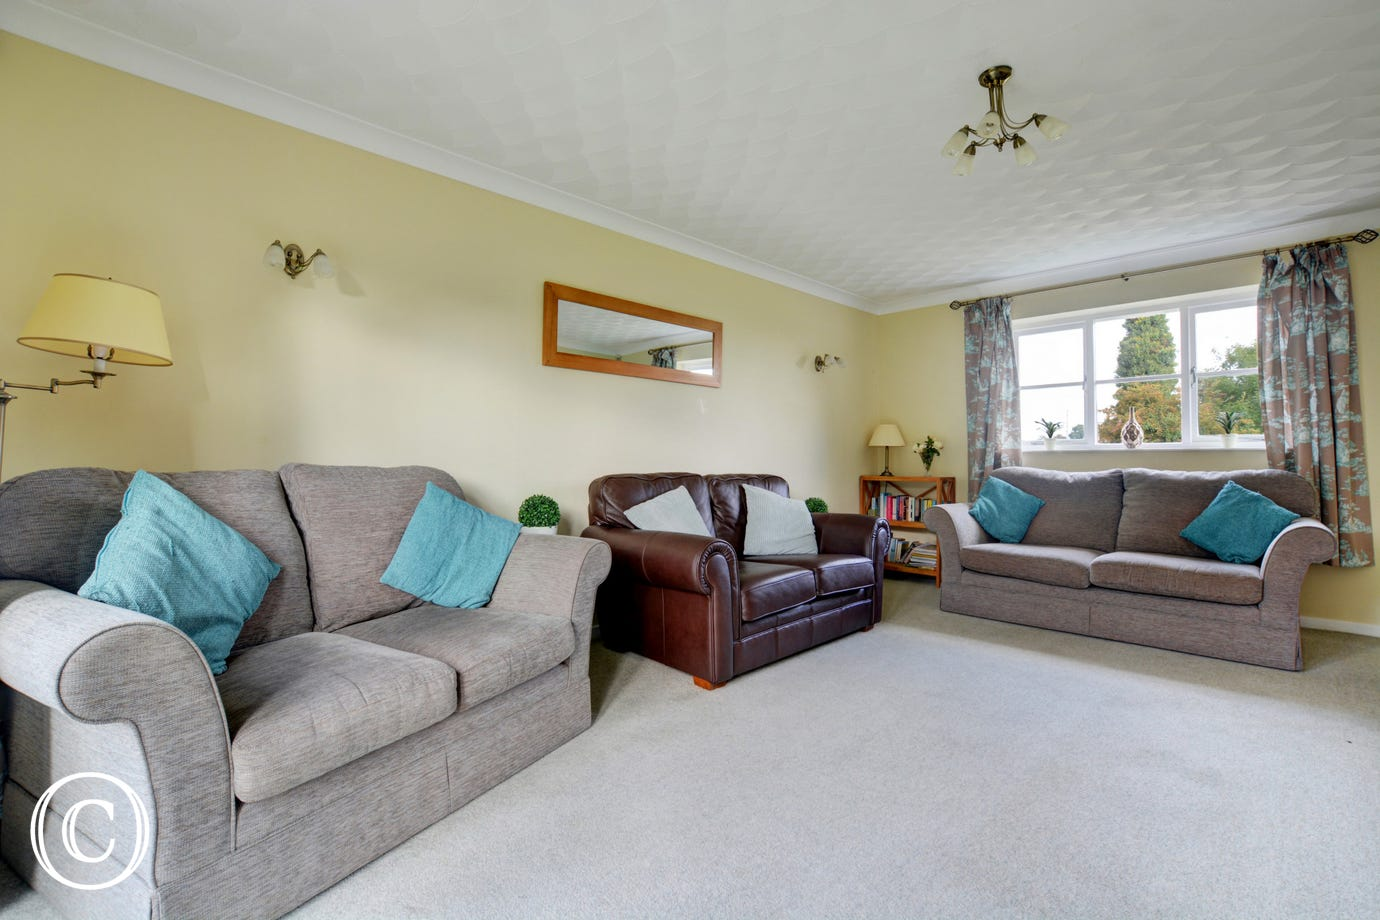 Lovely family sitting room with plenty of comfortable seating.